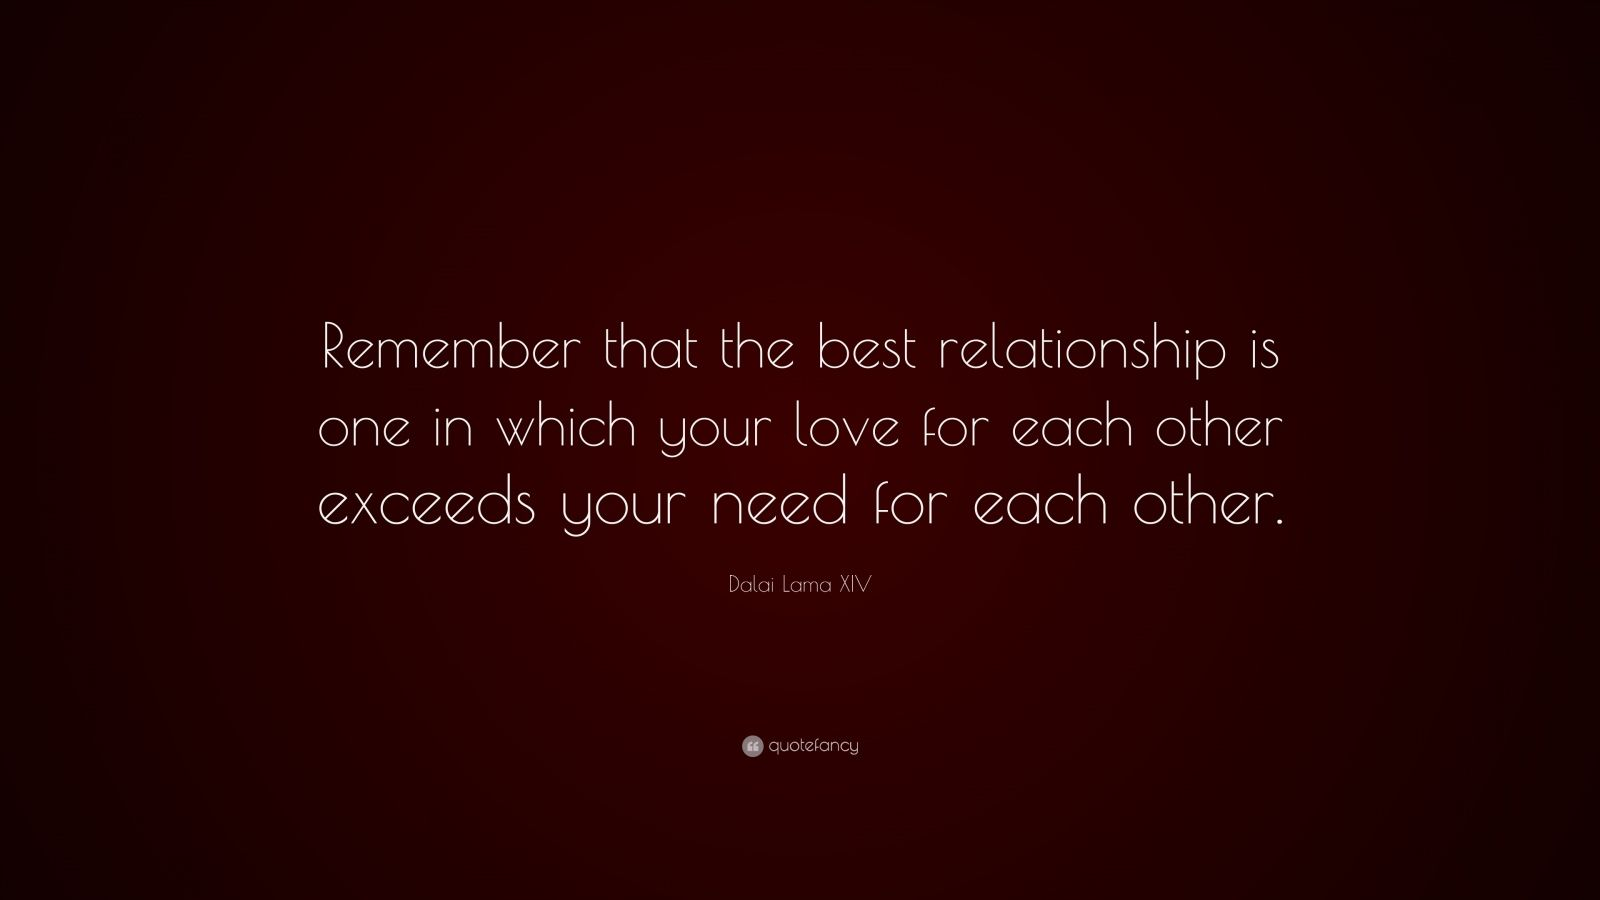 "Dalai Lama XIV Quote: ""Remember that the best relationship is one in which your love for each other exceeds your need for each other."""